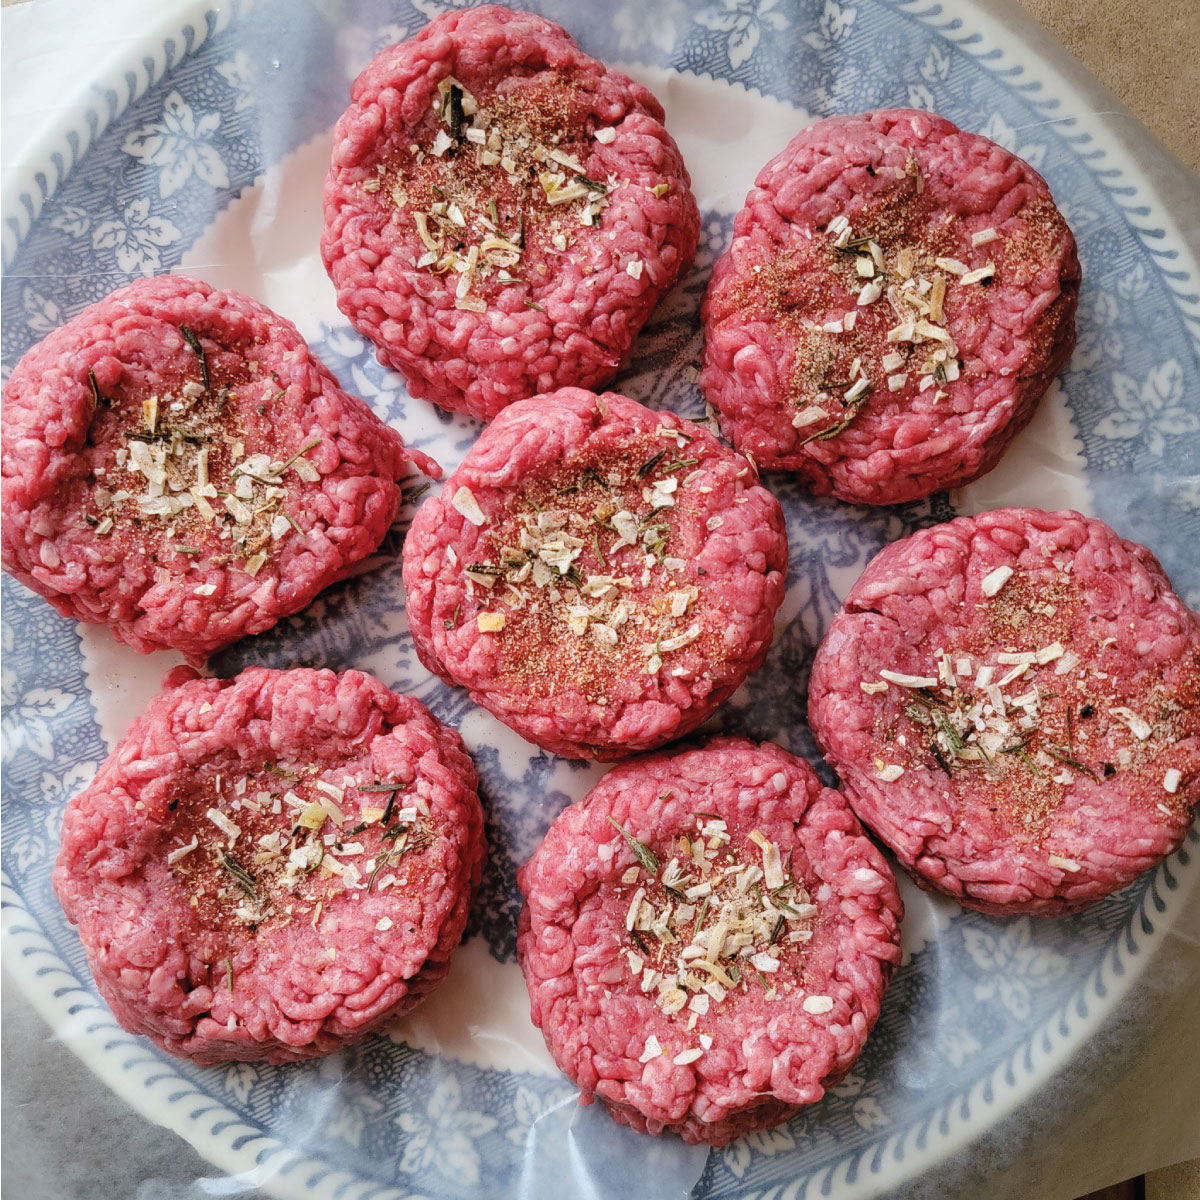 beef shaped into burgers with spices on top sitting on a plate ready to put on the grill